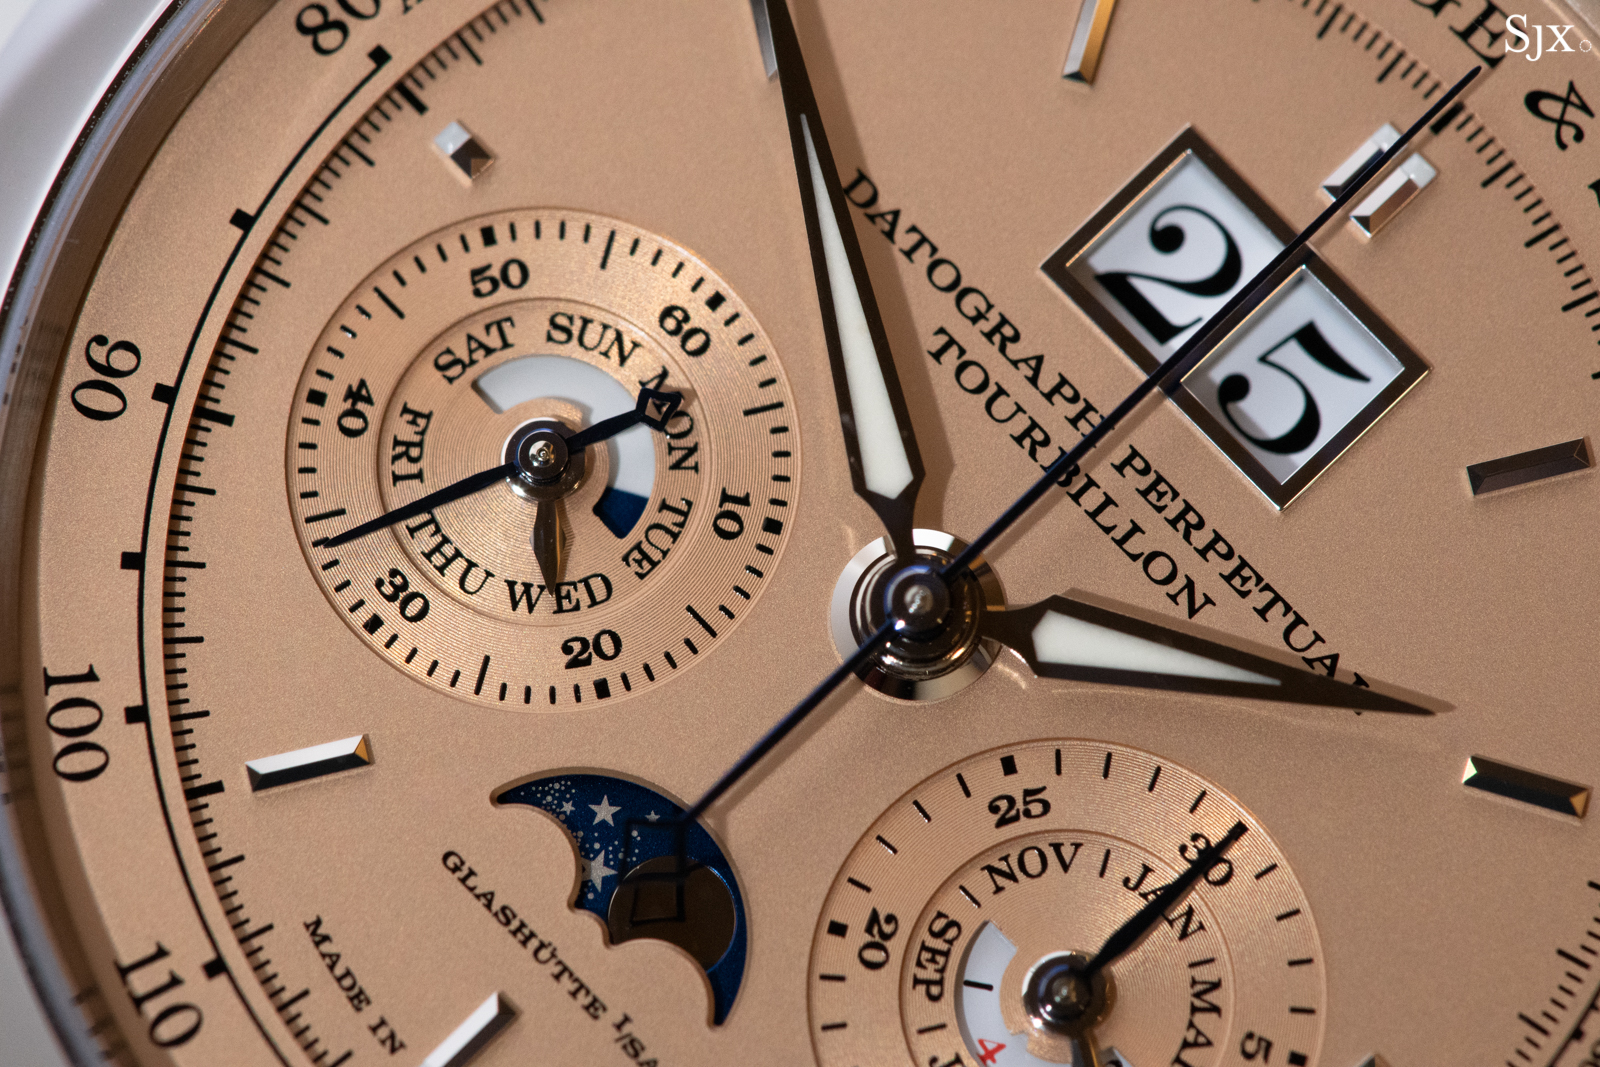 Visible at 6 o'clock is the gold moonphase disc with delicate, laser etched stars.